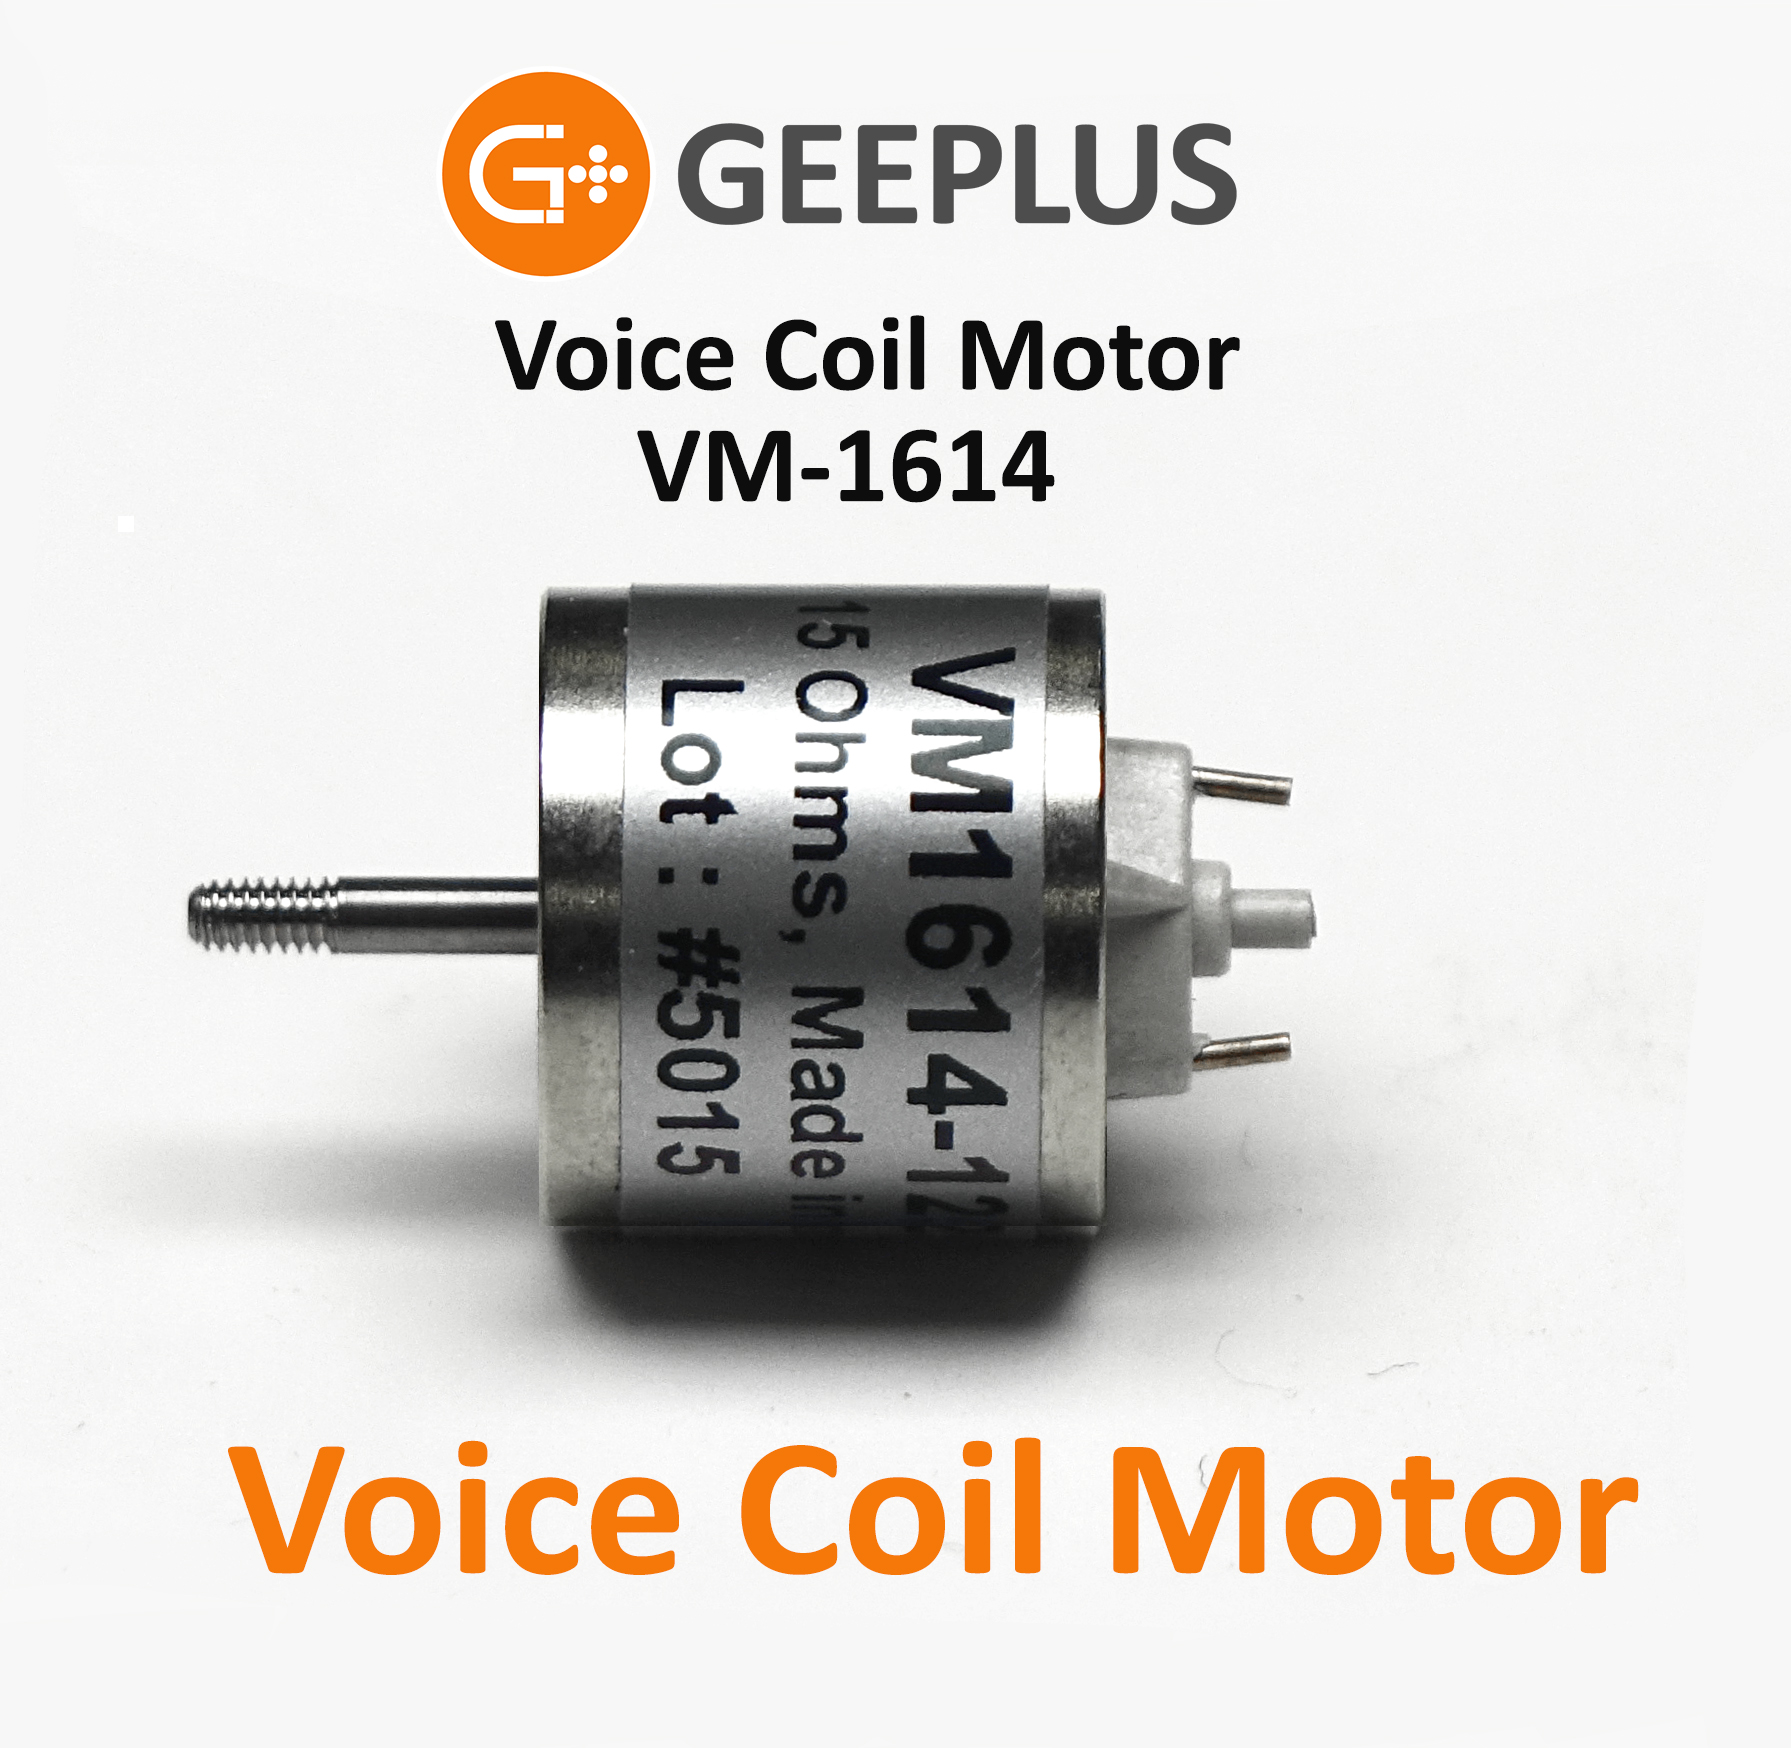 Voice Coil Motor VM1614 from Geeplus